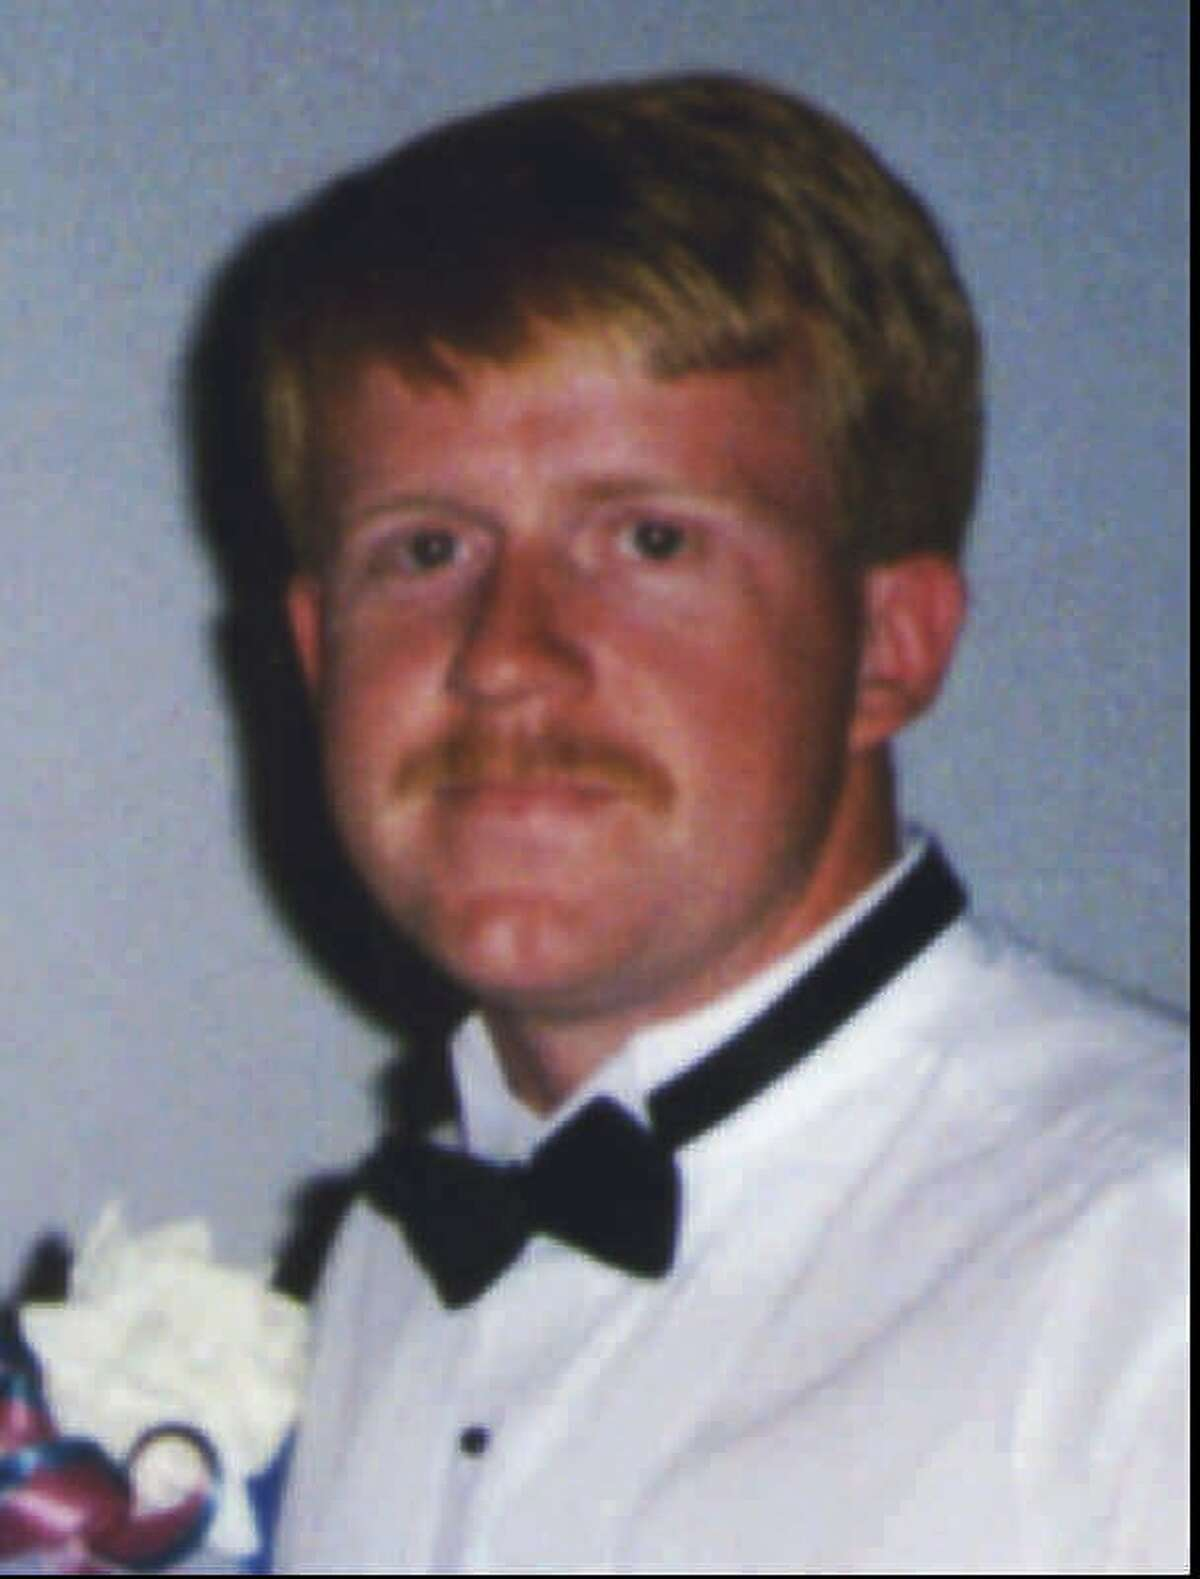 Seattle firefighter James Brown is seen in this August 1994 wedding photo. He was killed in the Jan. 5, 1995, fire at the Pang warehouse in the International District.